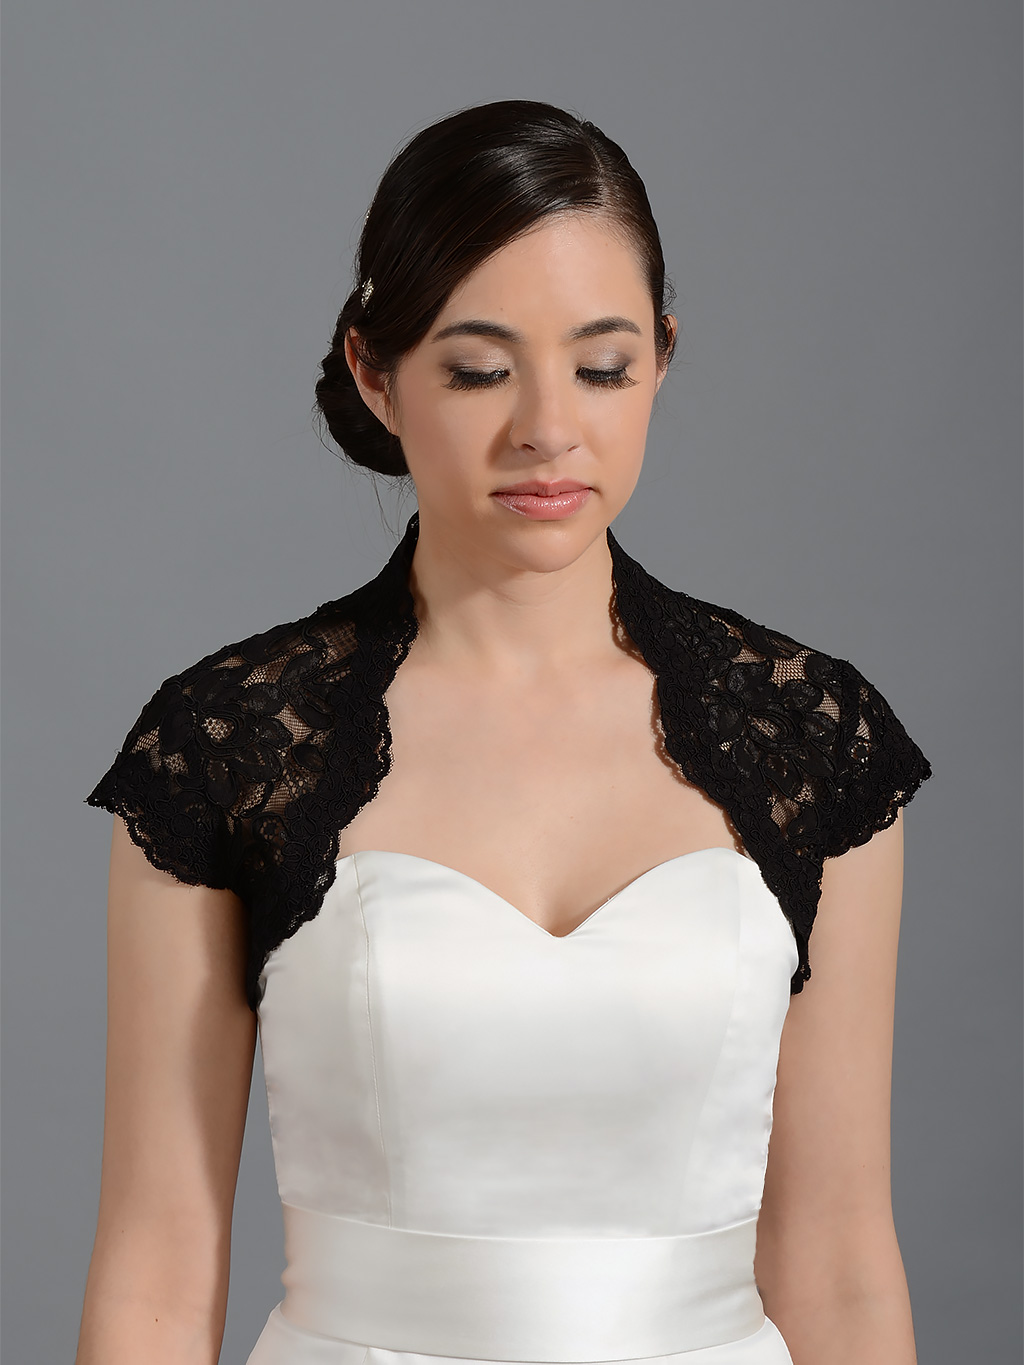 Black cap sleeve bridal alencon lace bolero jacket Lace_062